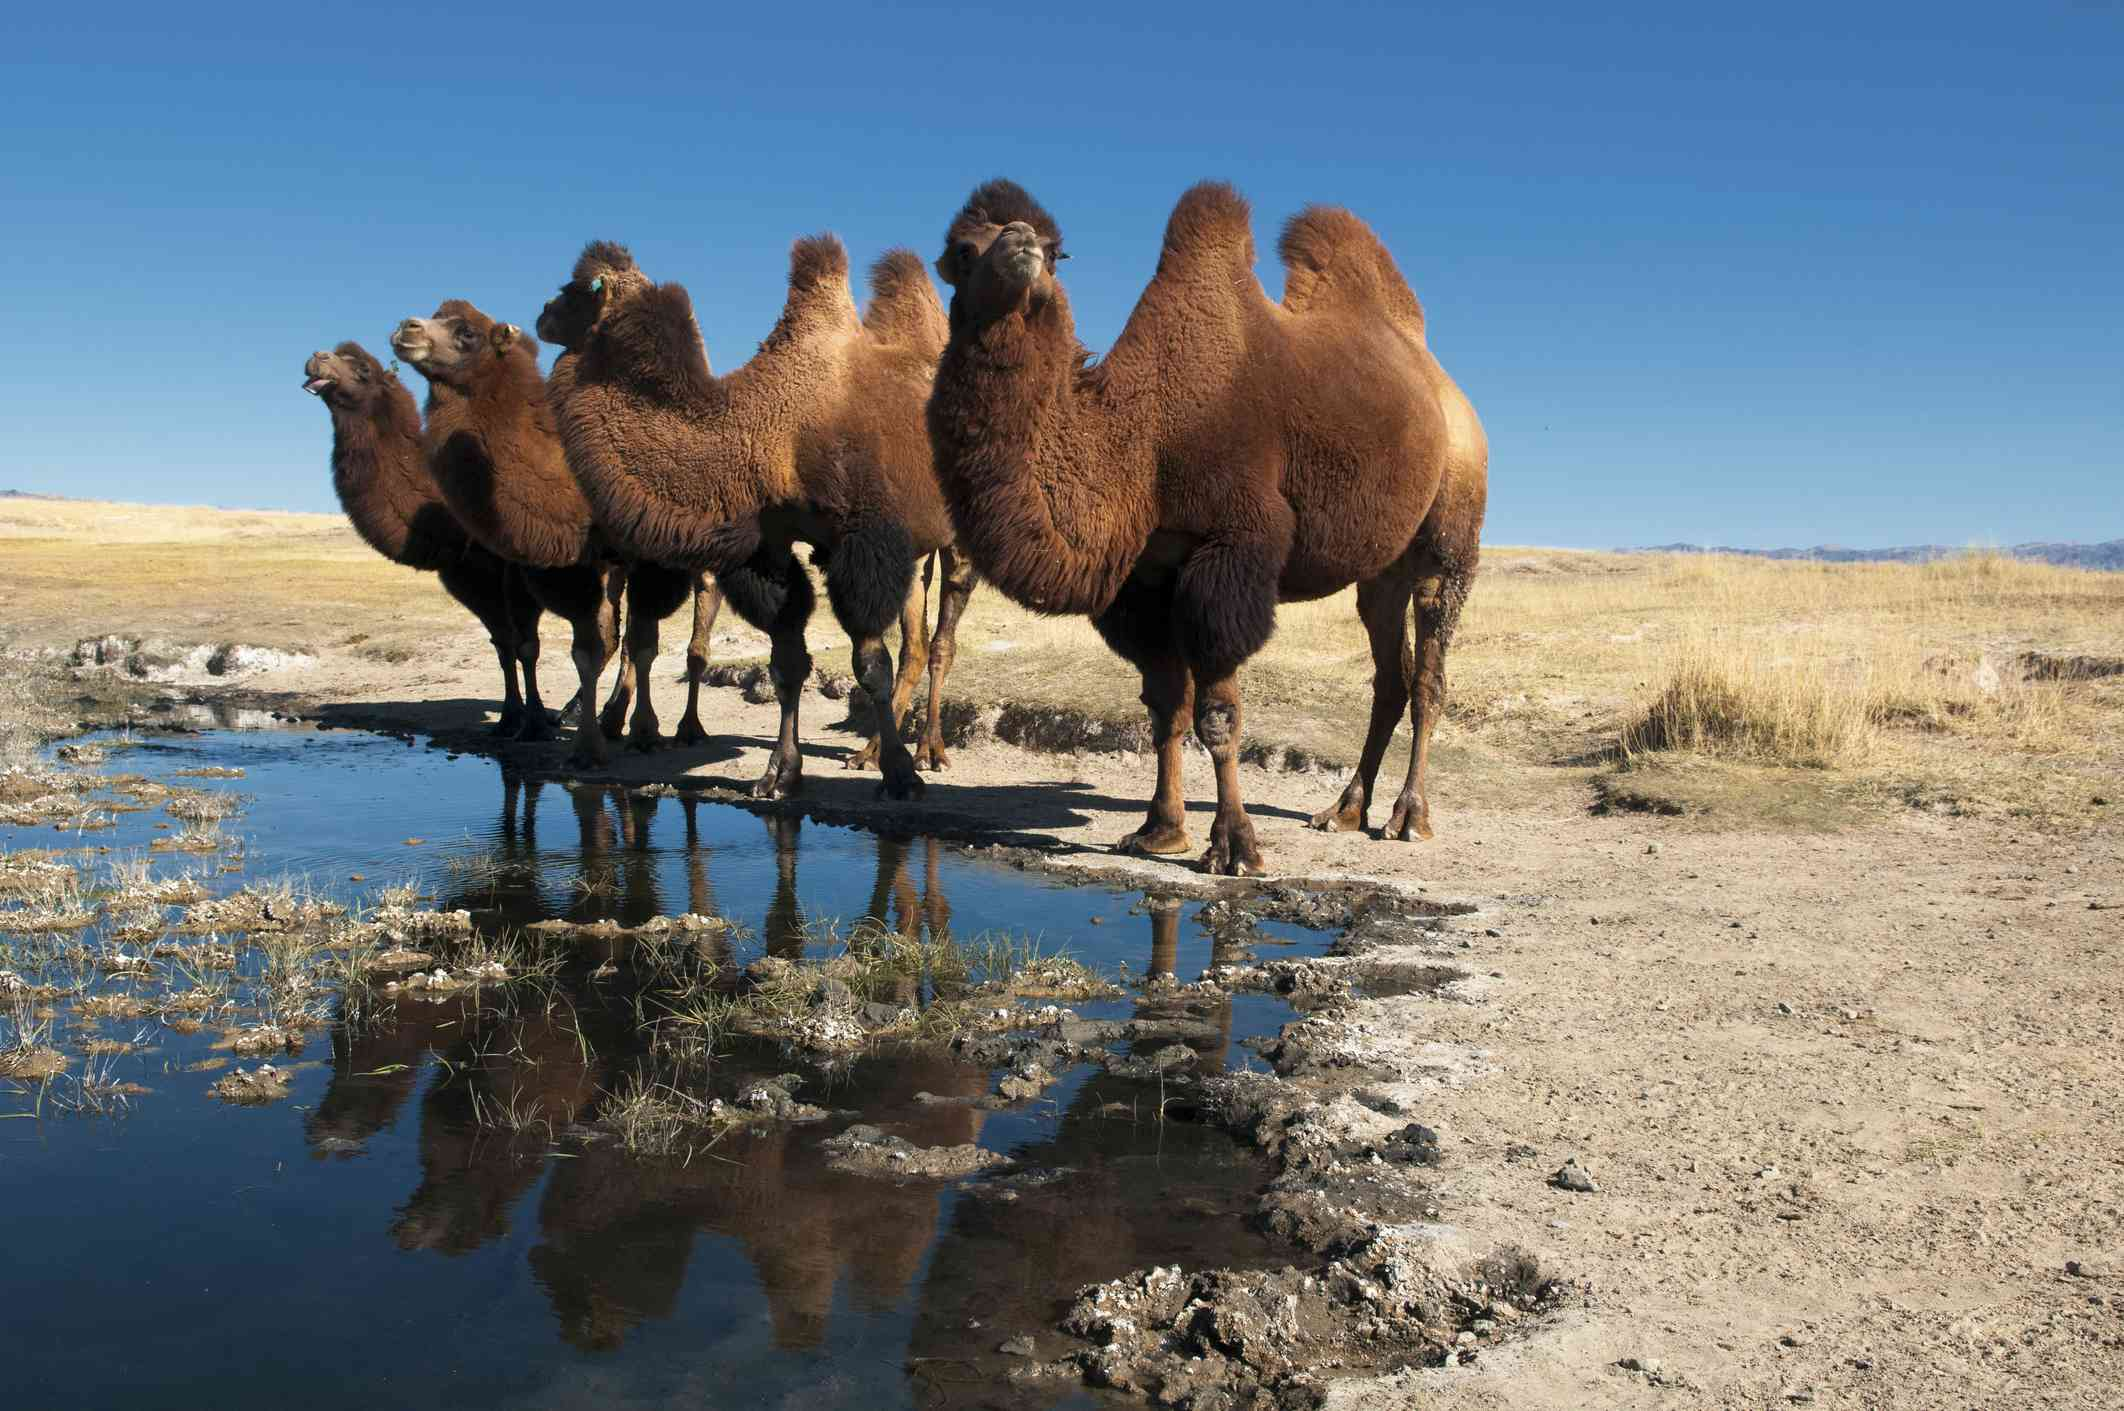 Group of Bactrian camels standing near a small pool of water in the desert